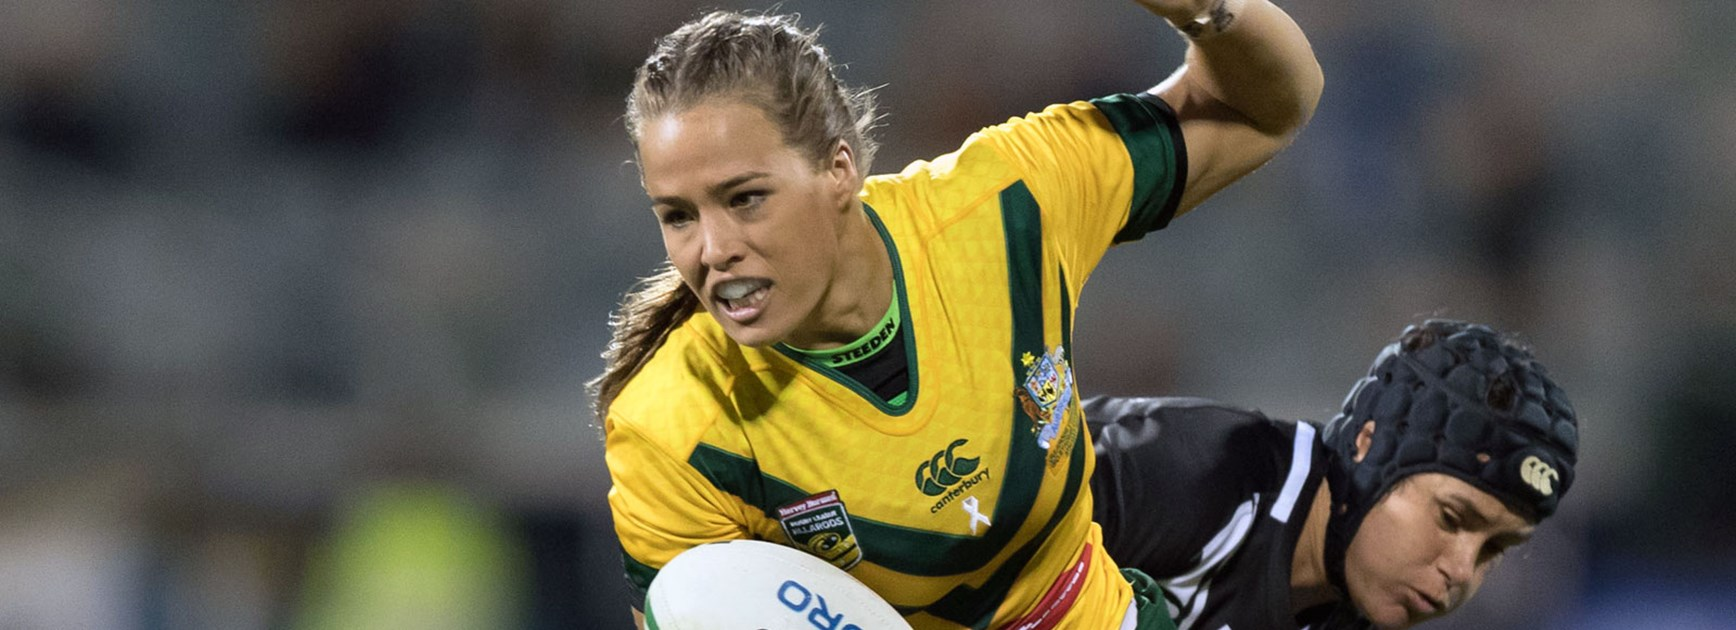 Timely World Cup auditions for Jillaroos debutants